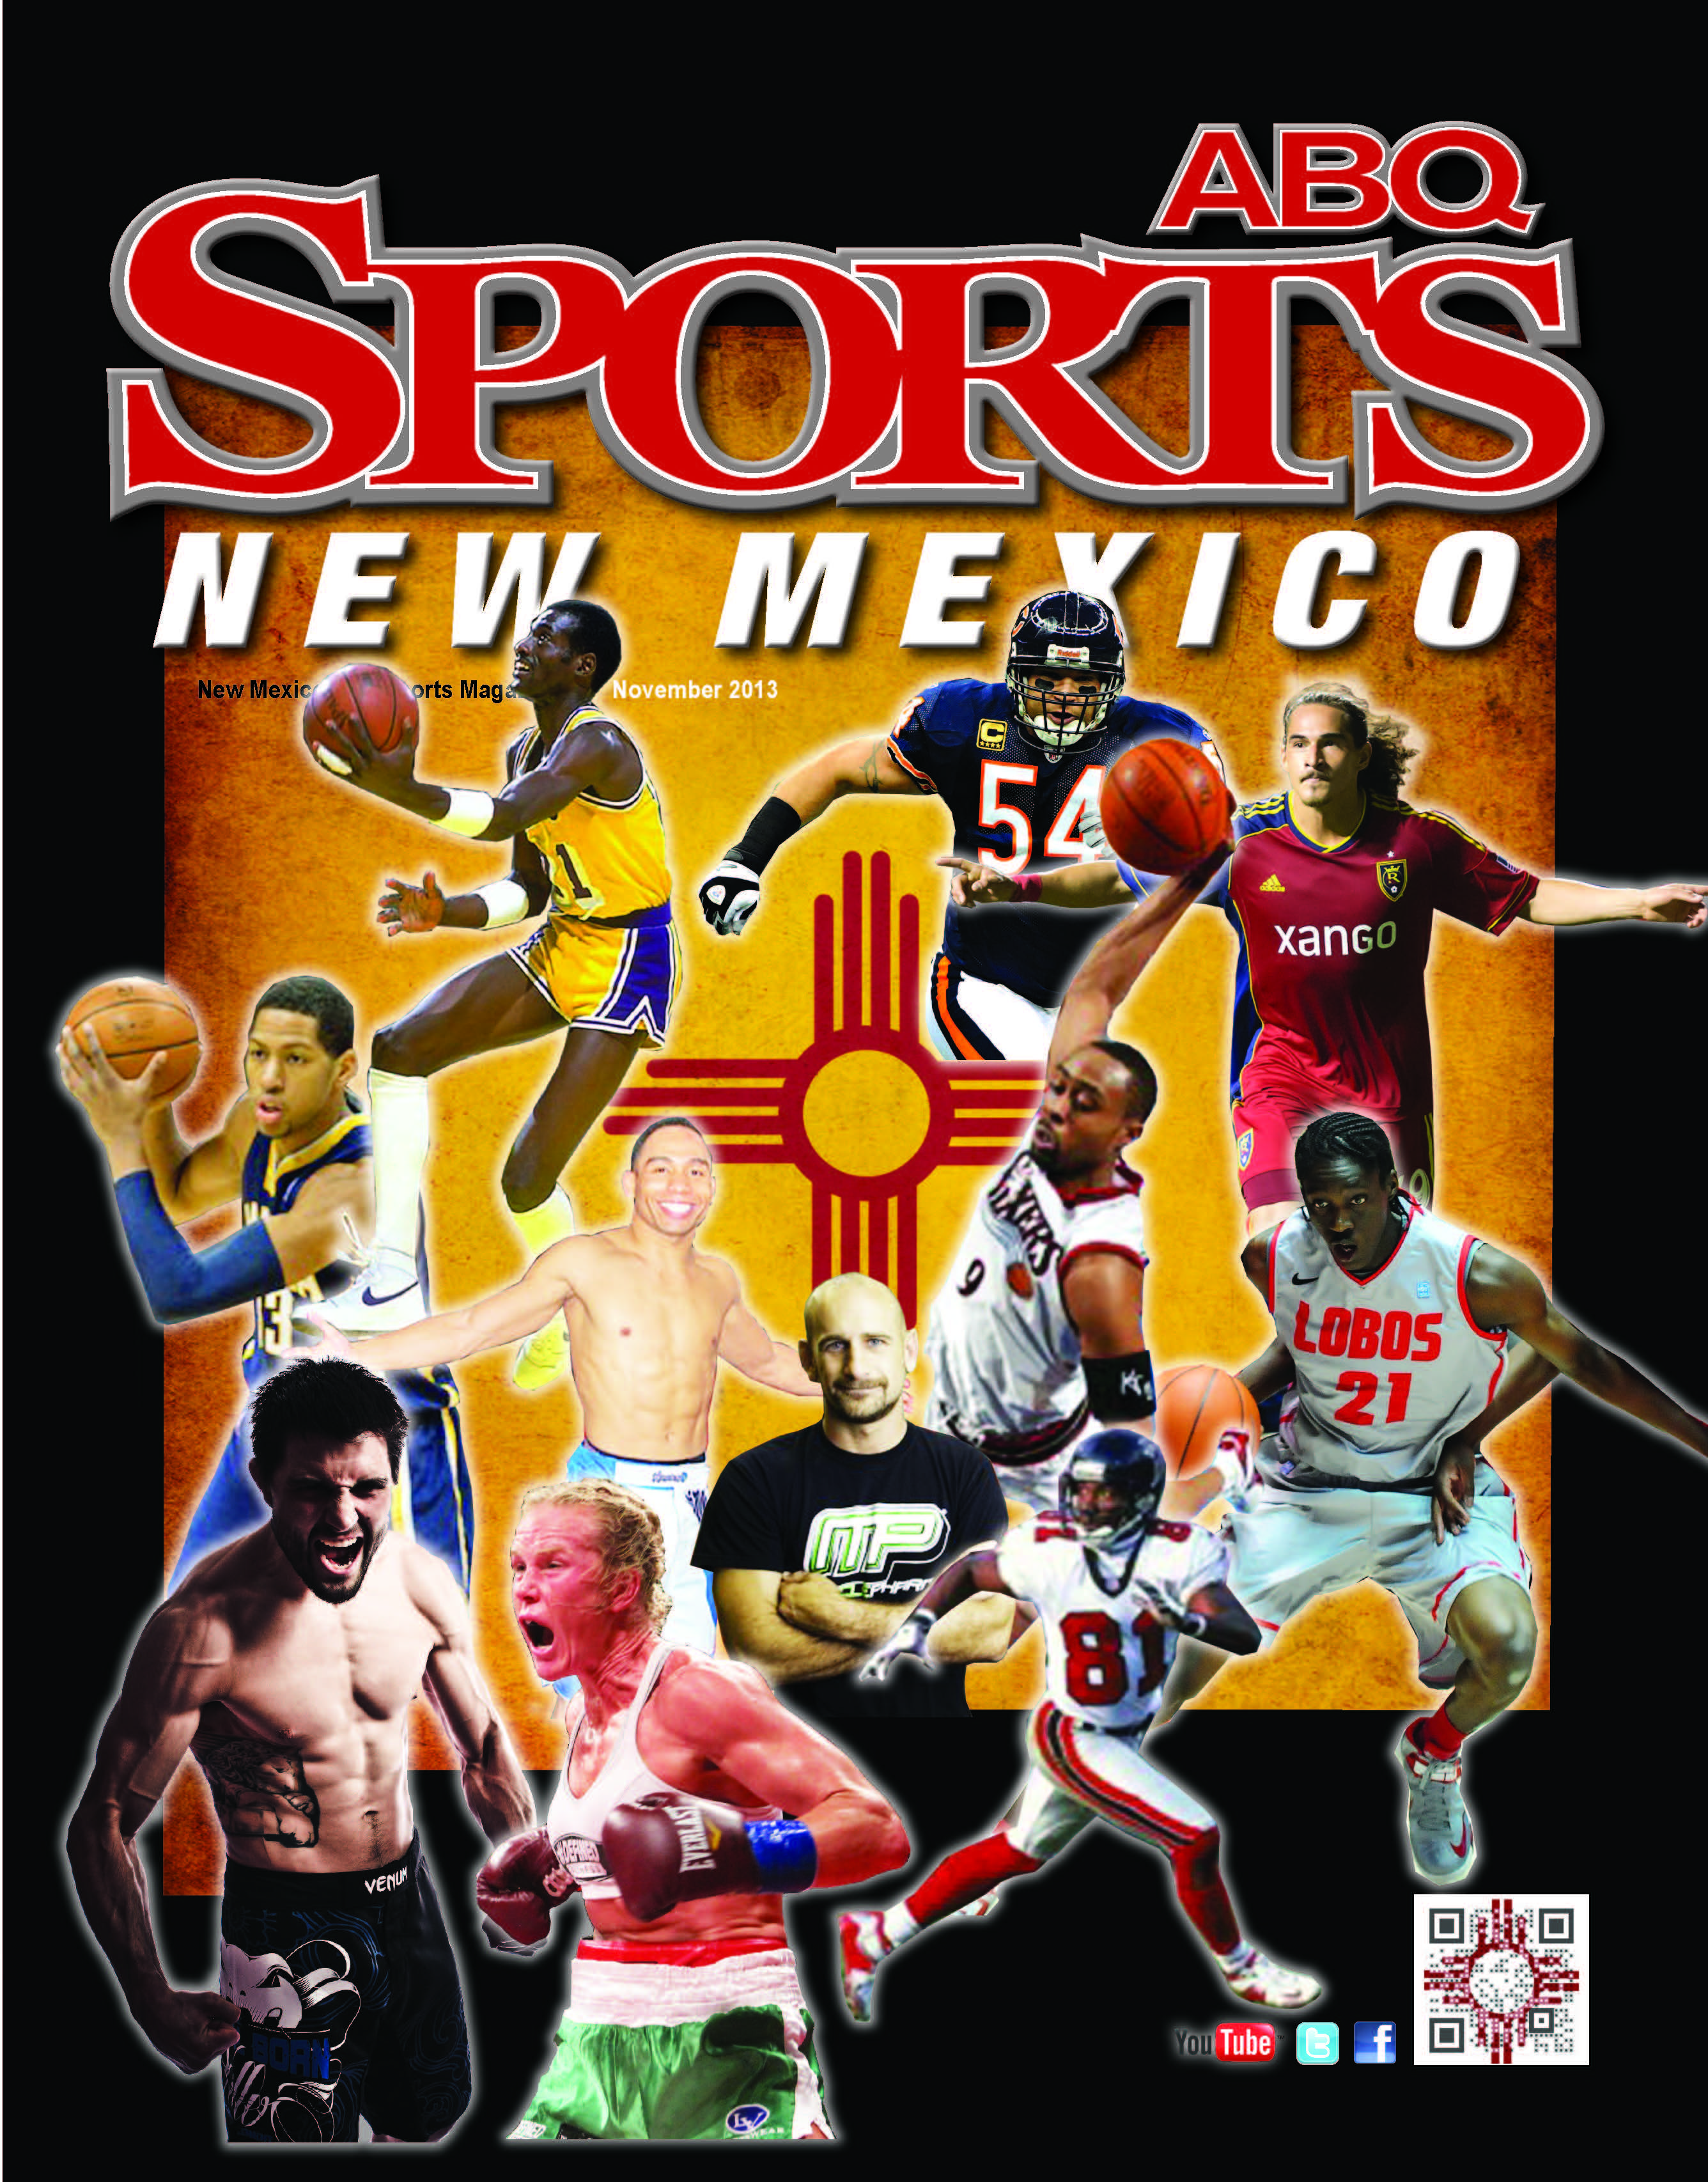 Read More About Some The Top Athletes November Issue Abq Sports Magazine Visit Www